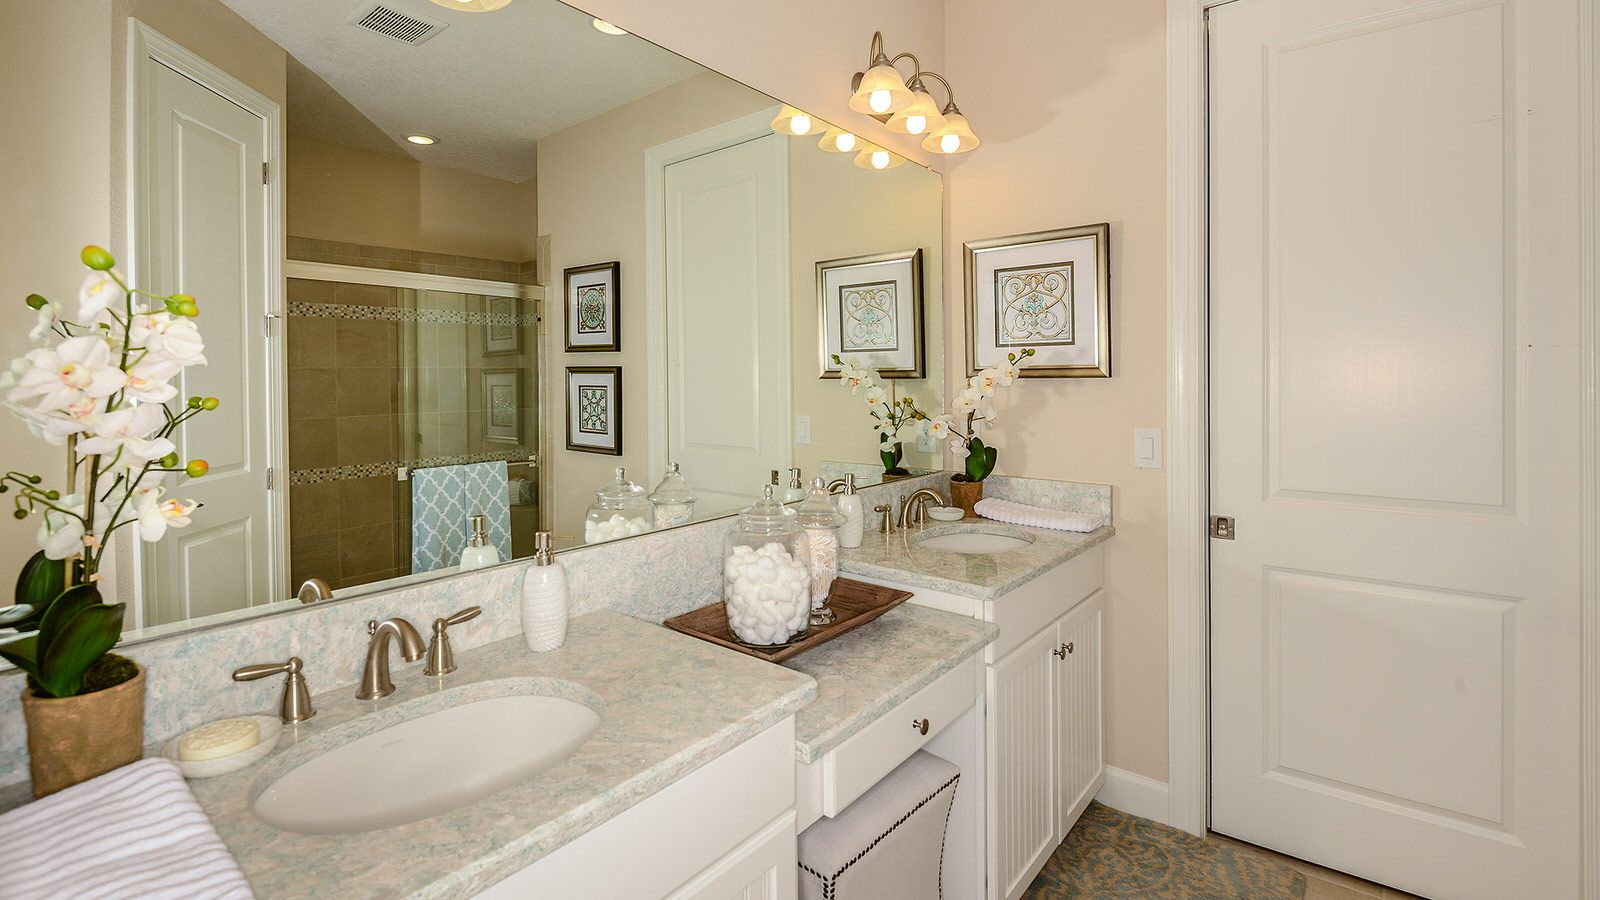 Bathroom featured in the Roma Plan By Taylor Morrison in Tampa-St. Petersburg, FL